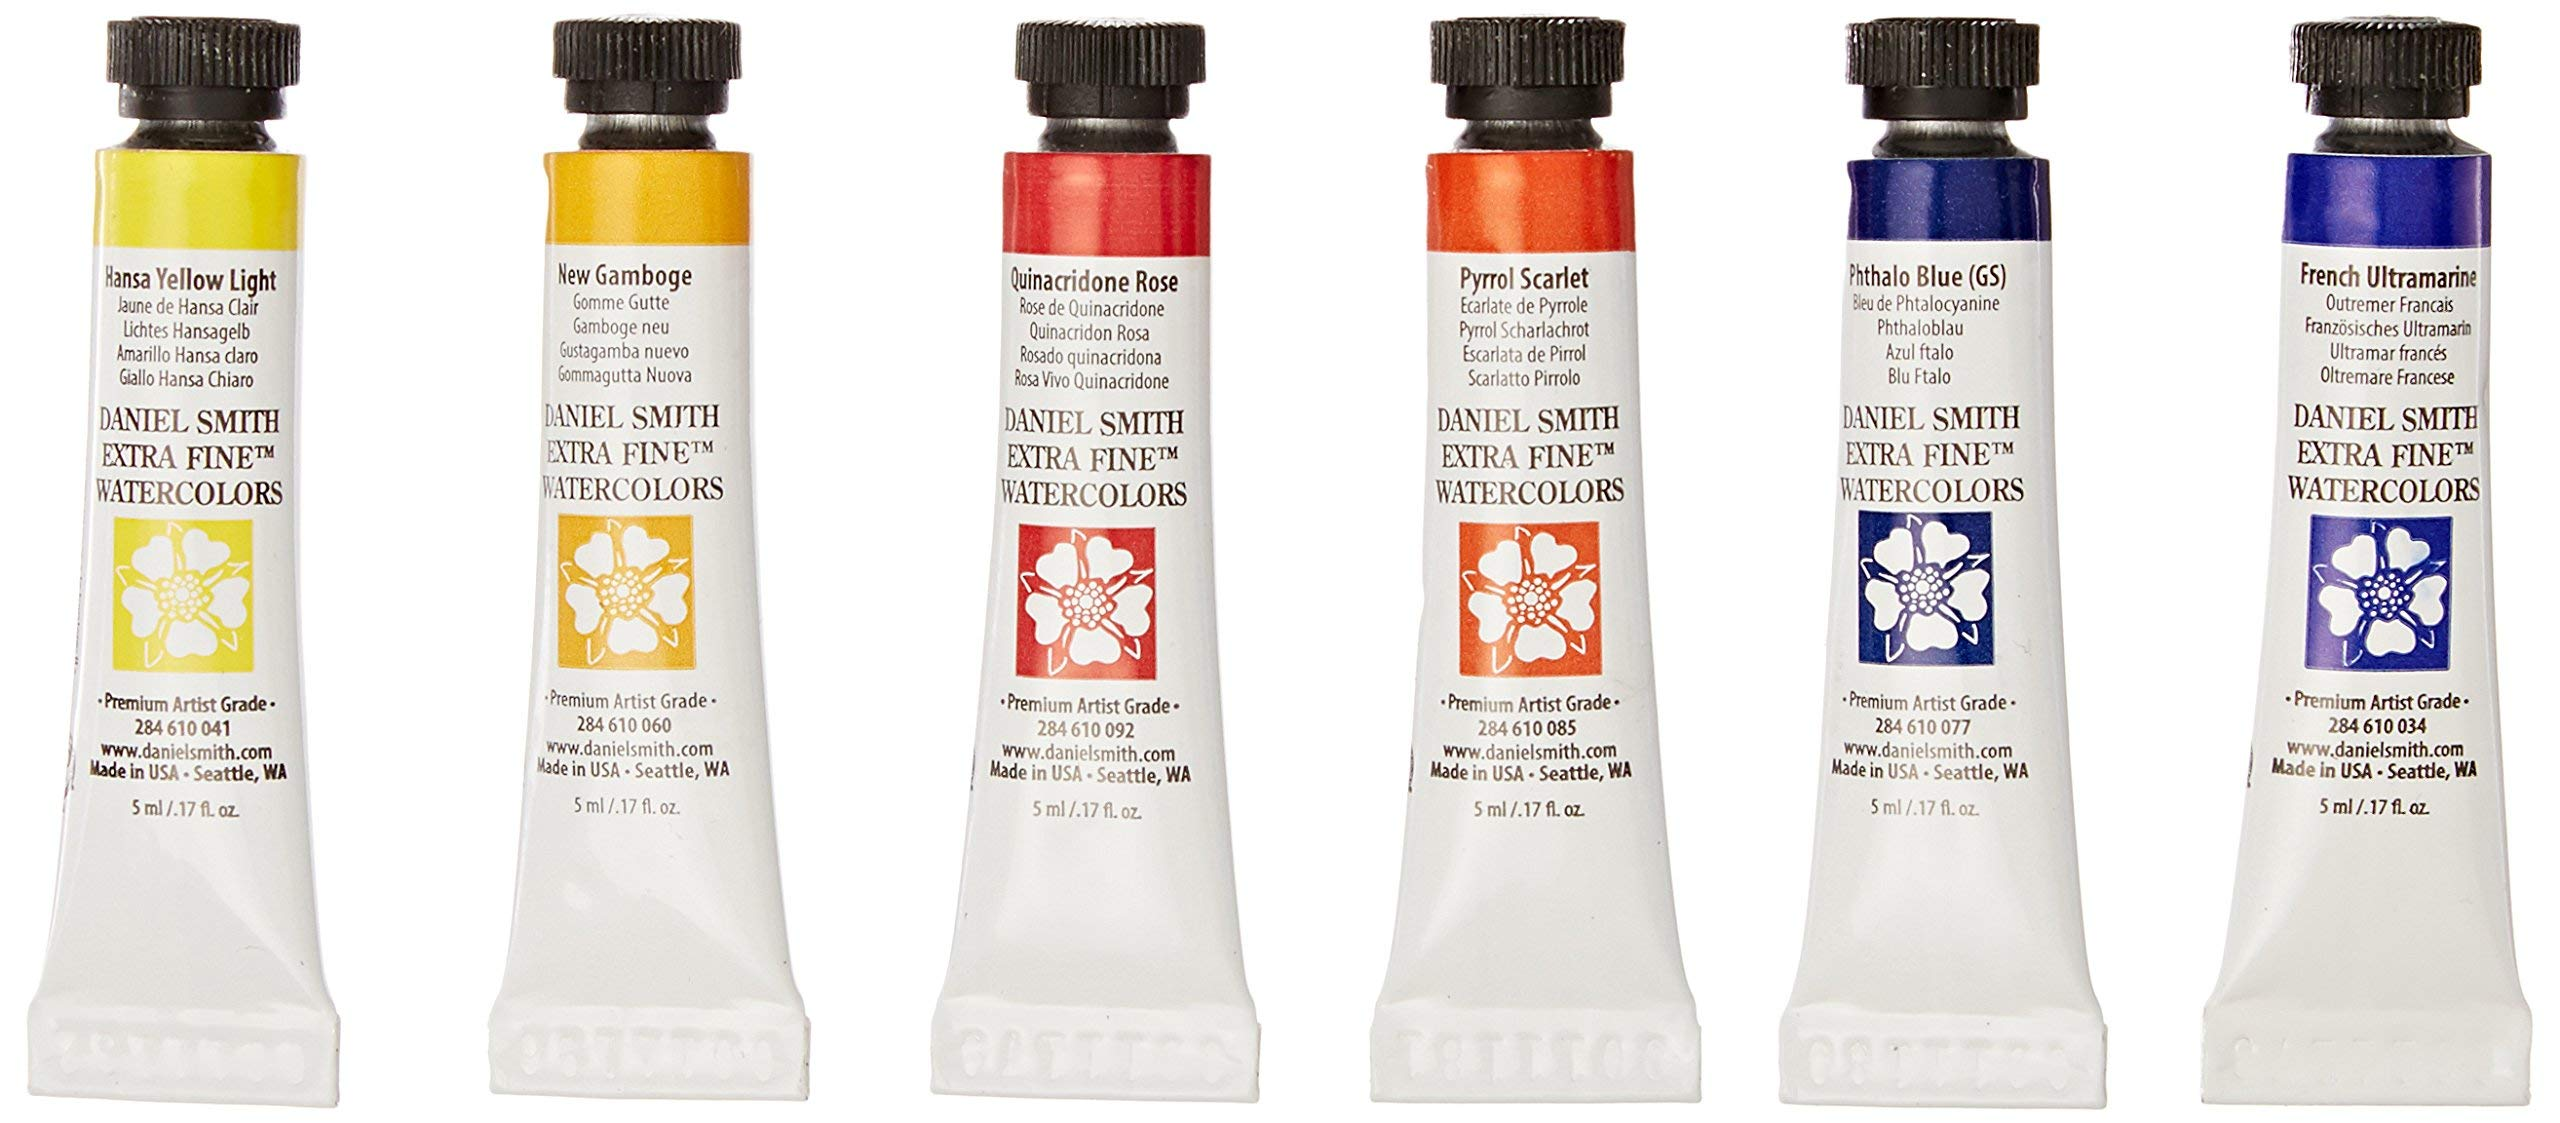 DANIEL SMITH 285610005 Extra Fine Essentials Introductory Watercolor, 6 Tubes, 5ml by DANIEL SMITH